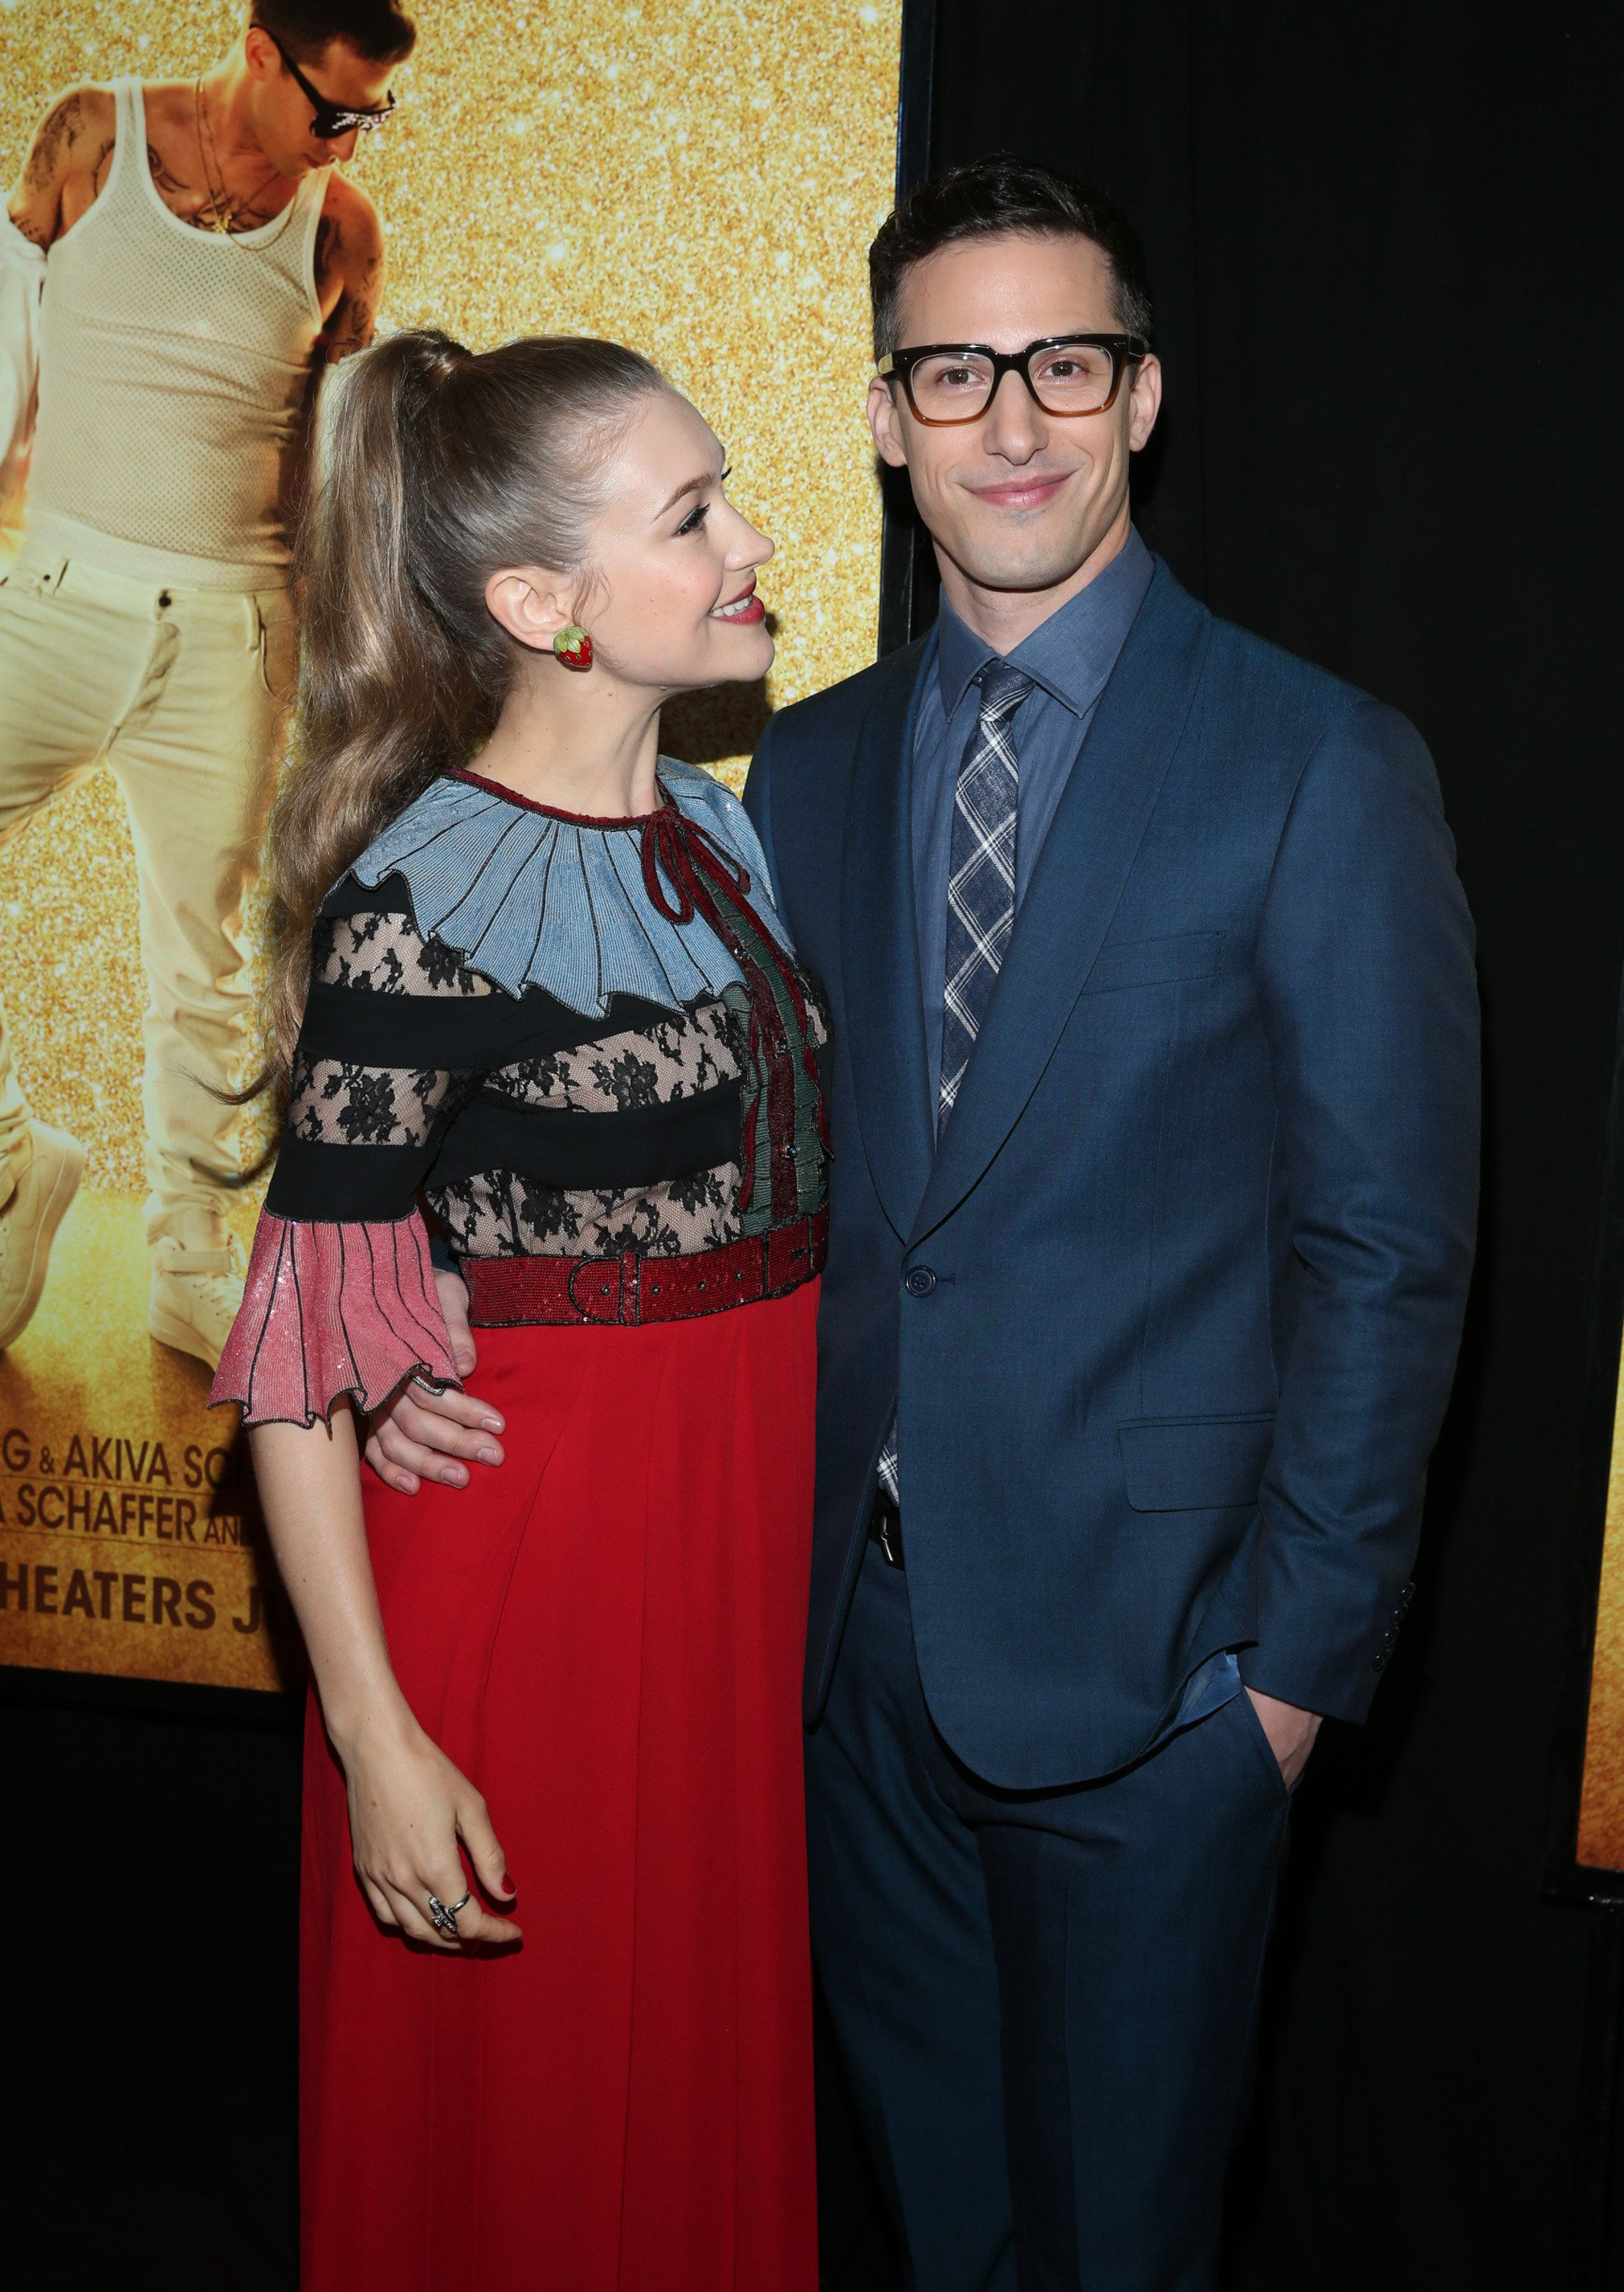 NEW YORK, NY - MAY 24:  Andy Samberg and Joanna Newsom attend the New York Premiere of 'Popstar: Never Stop Never Stopping' at AMC Loews Lincoln Square 13 theater on May 24, 2016 in New York City.  (Photo by Rob Kim/Getty Images)